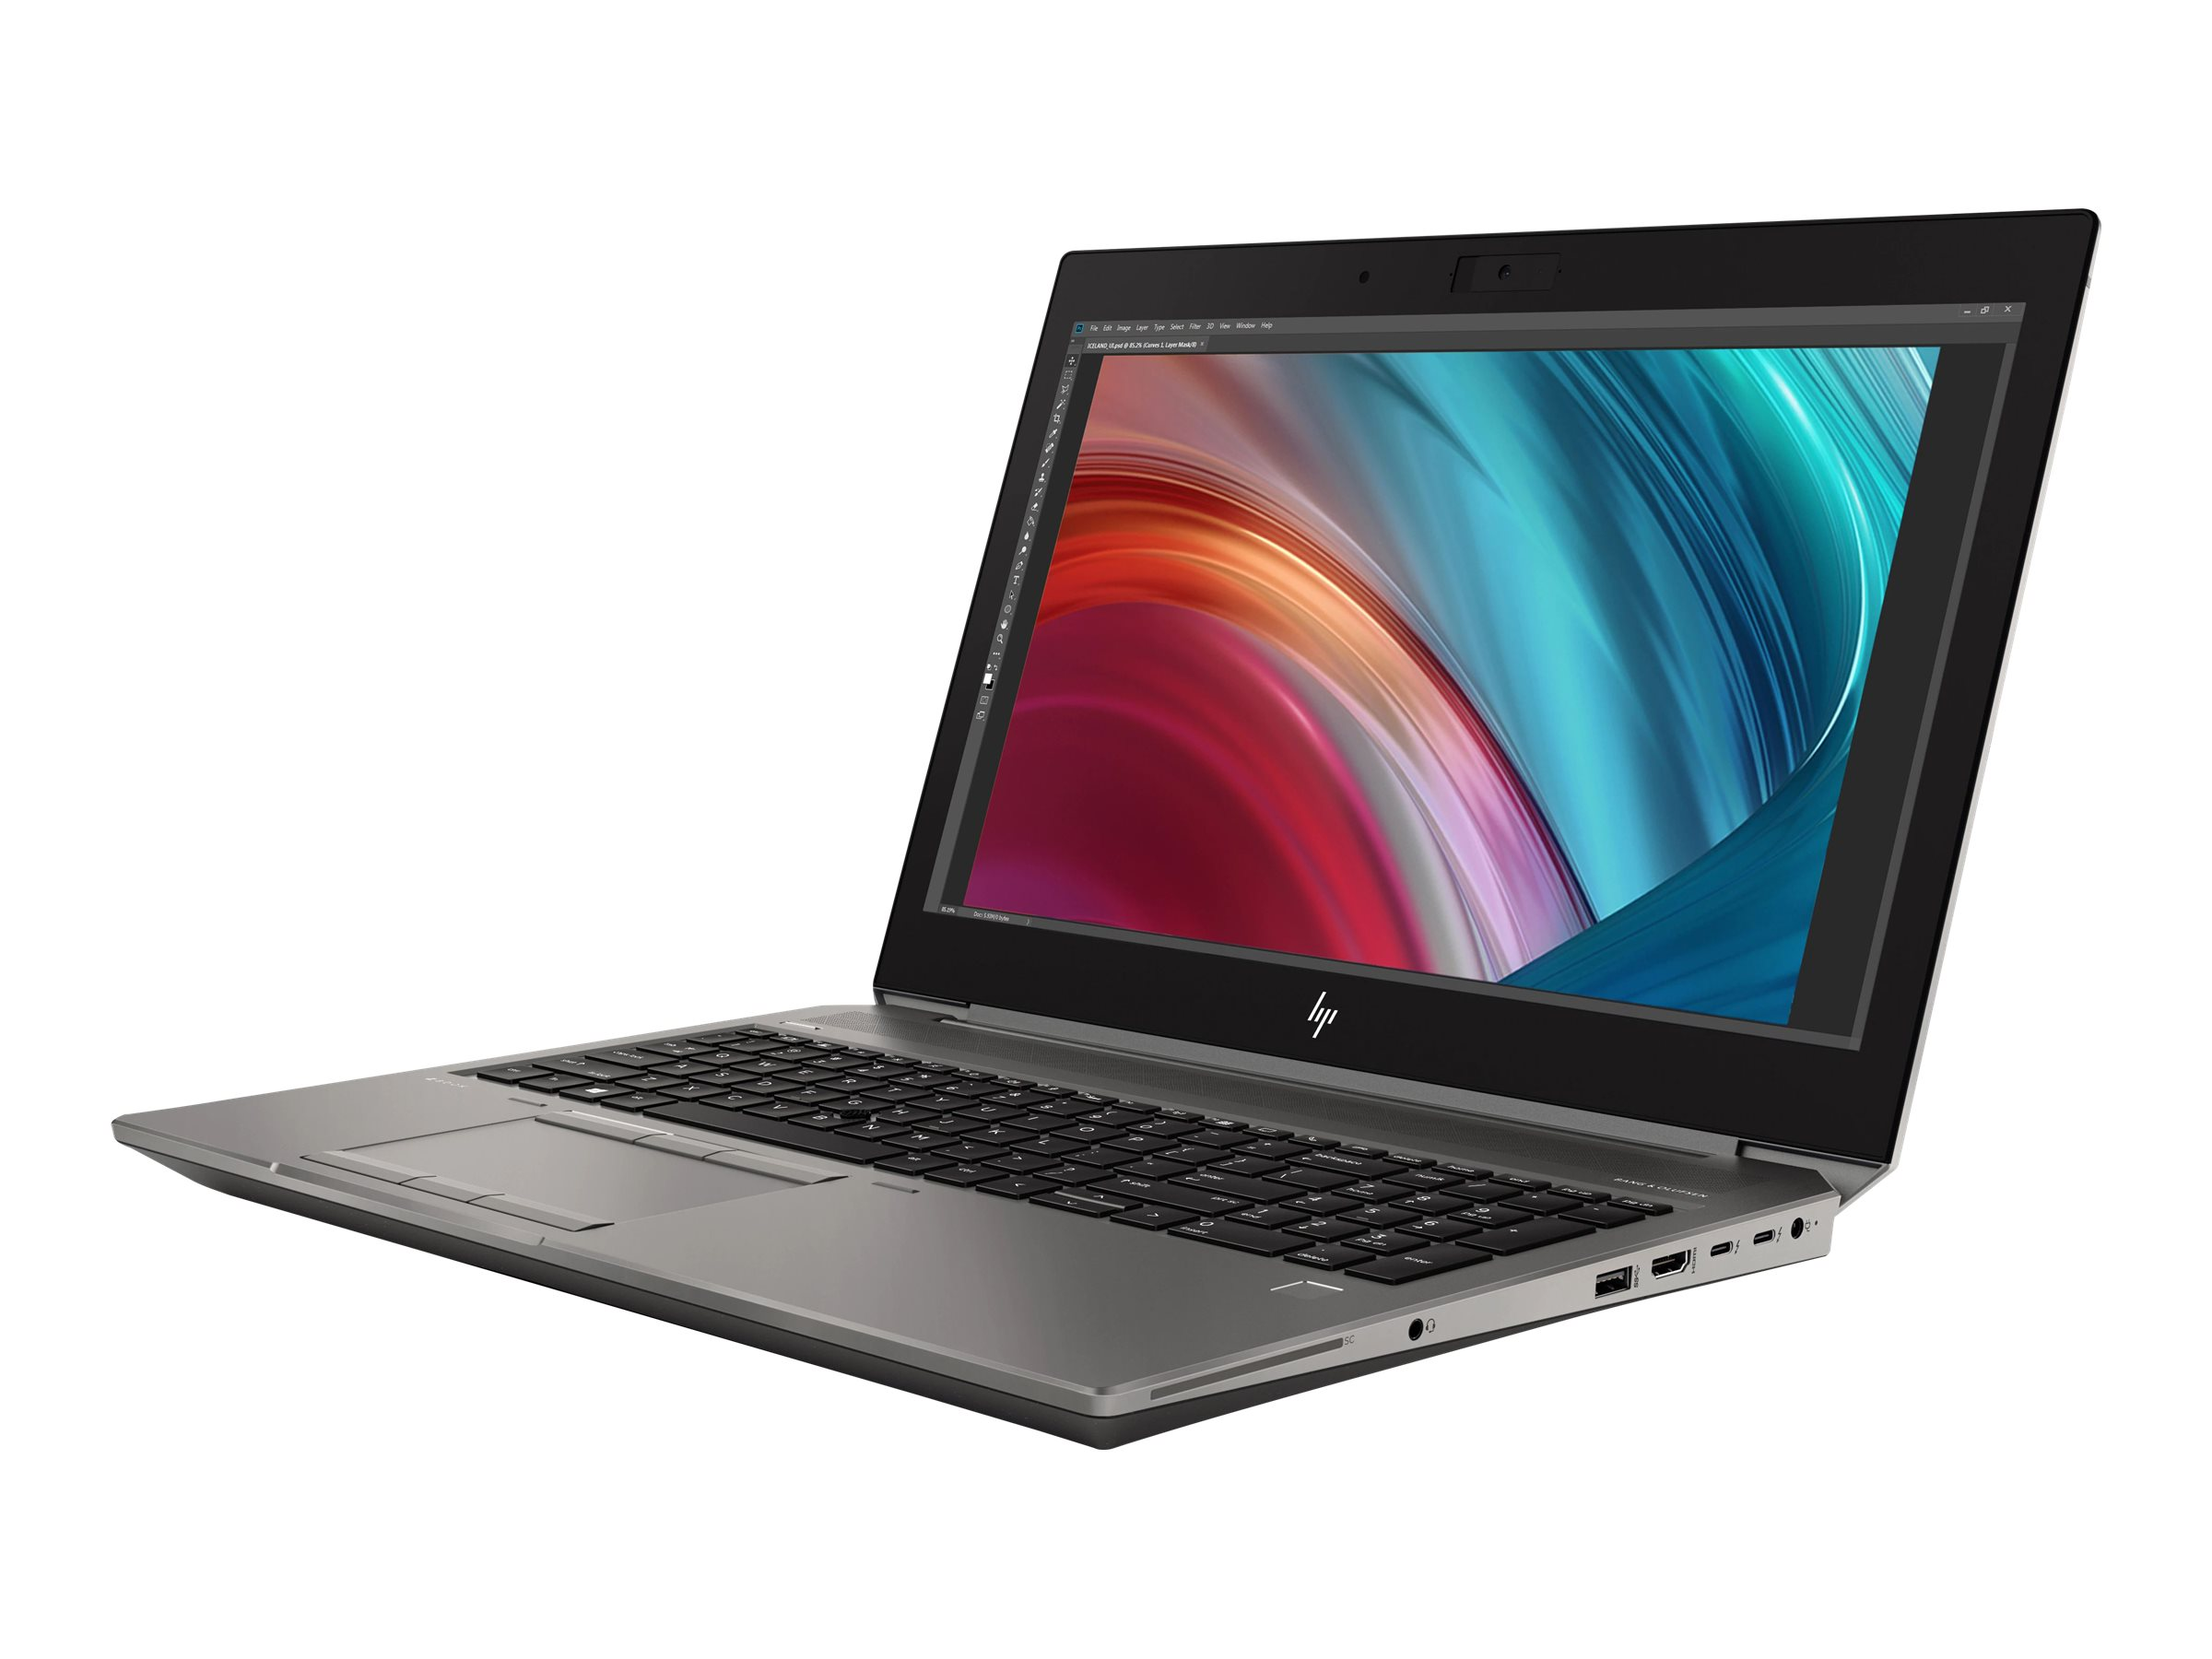 """HP ZBook 15 G6 Mobile Workstation - 15.6"""" - Core i9 9880H - 32 GB RAM - 512 GB SSD + 1 TB HDD - US"""